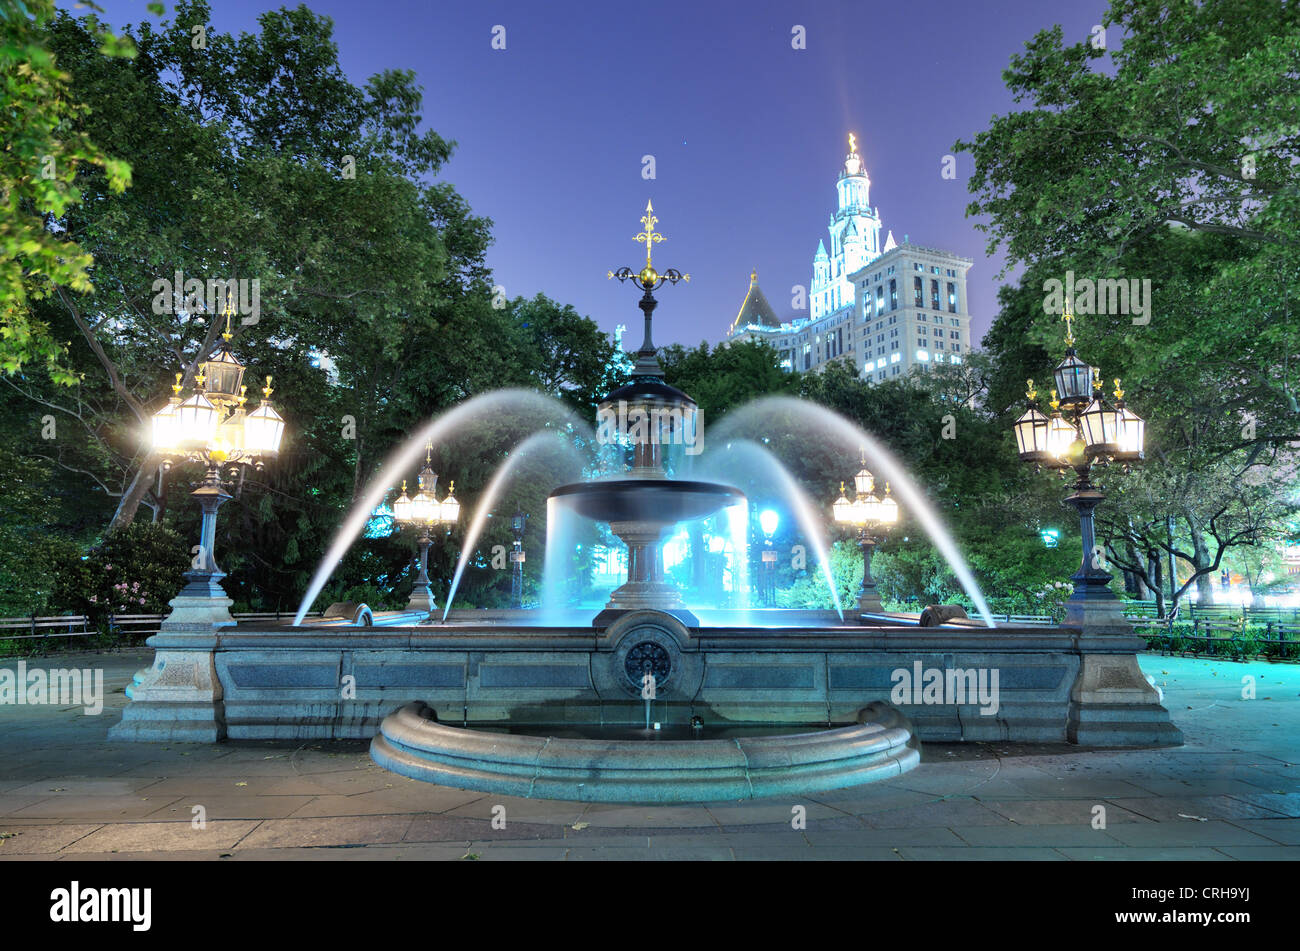 City Hall Park in New York City - Stock Image